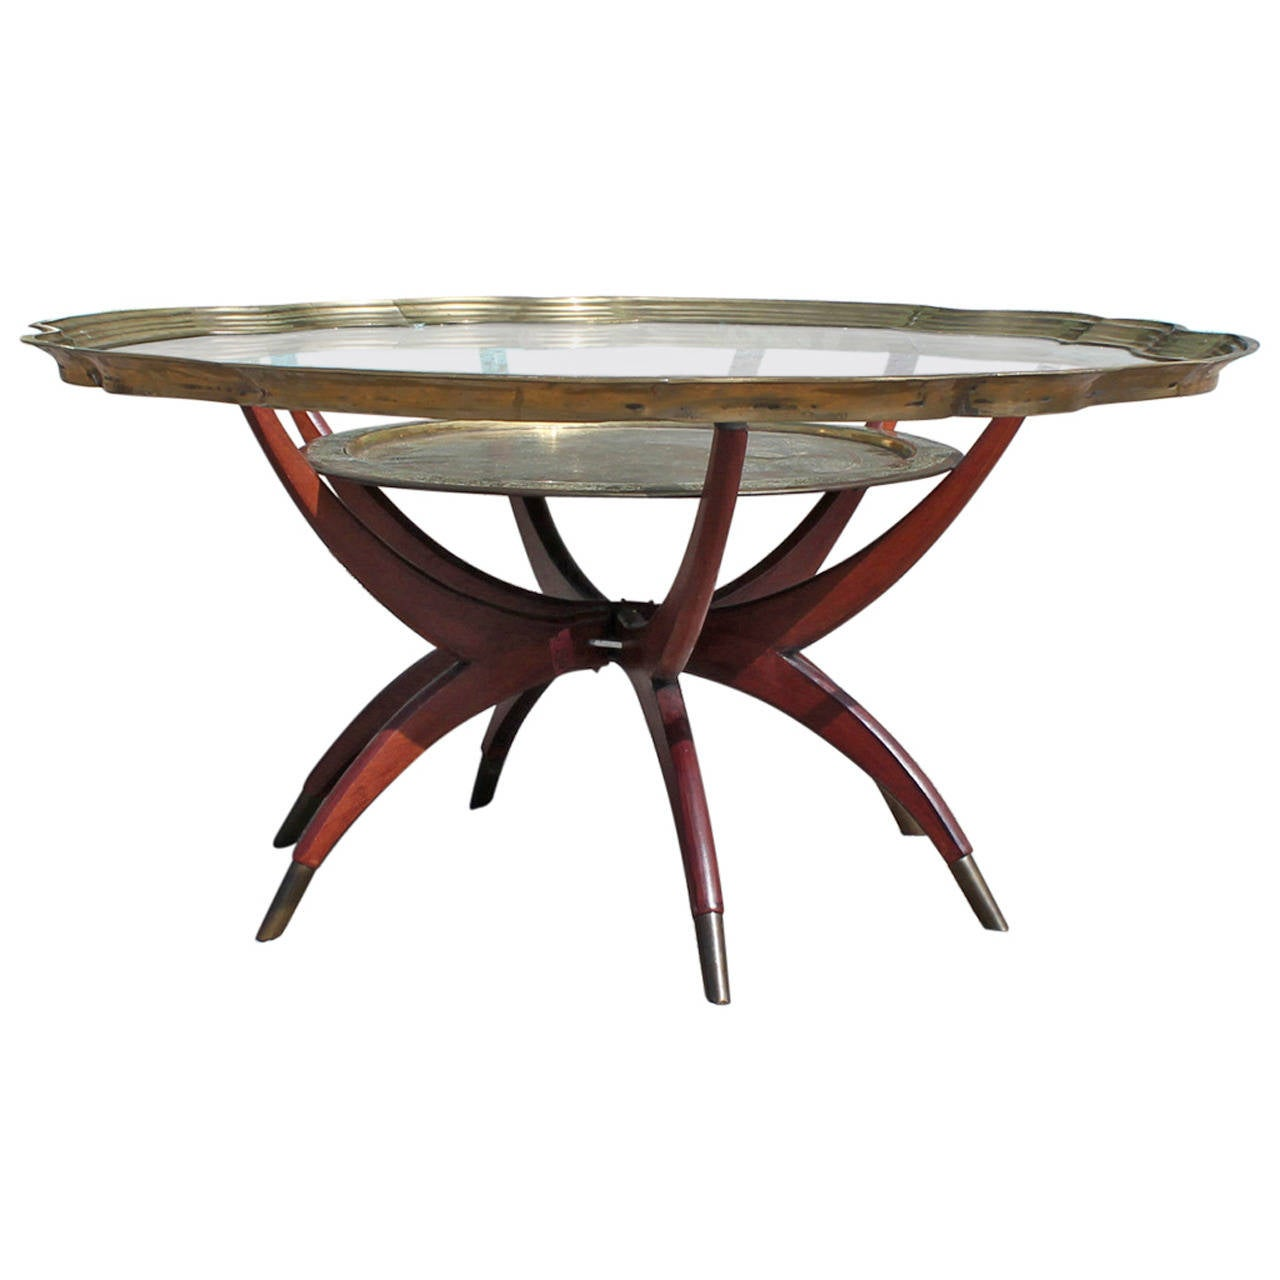 Hollywood Regency Brass Baker Spider Base Coffee Table With Glass Top For Sale At 1stdibs